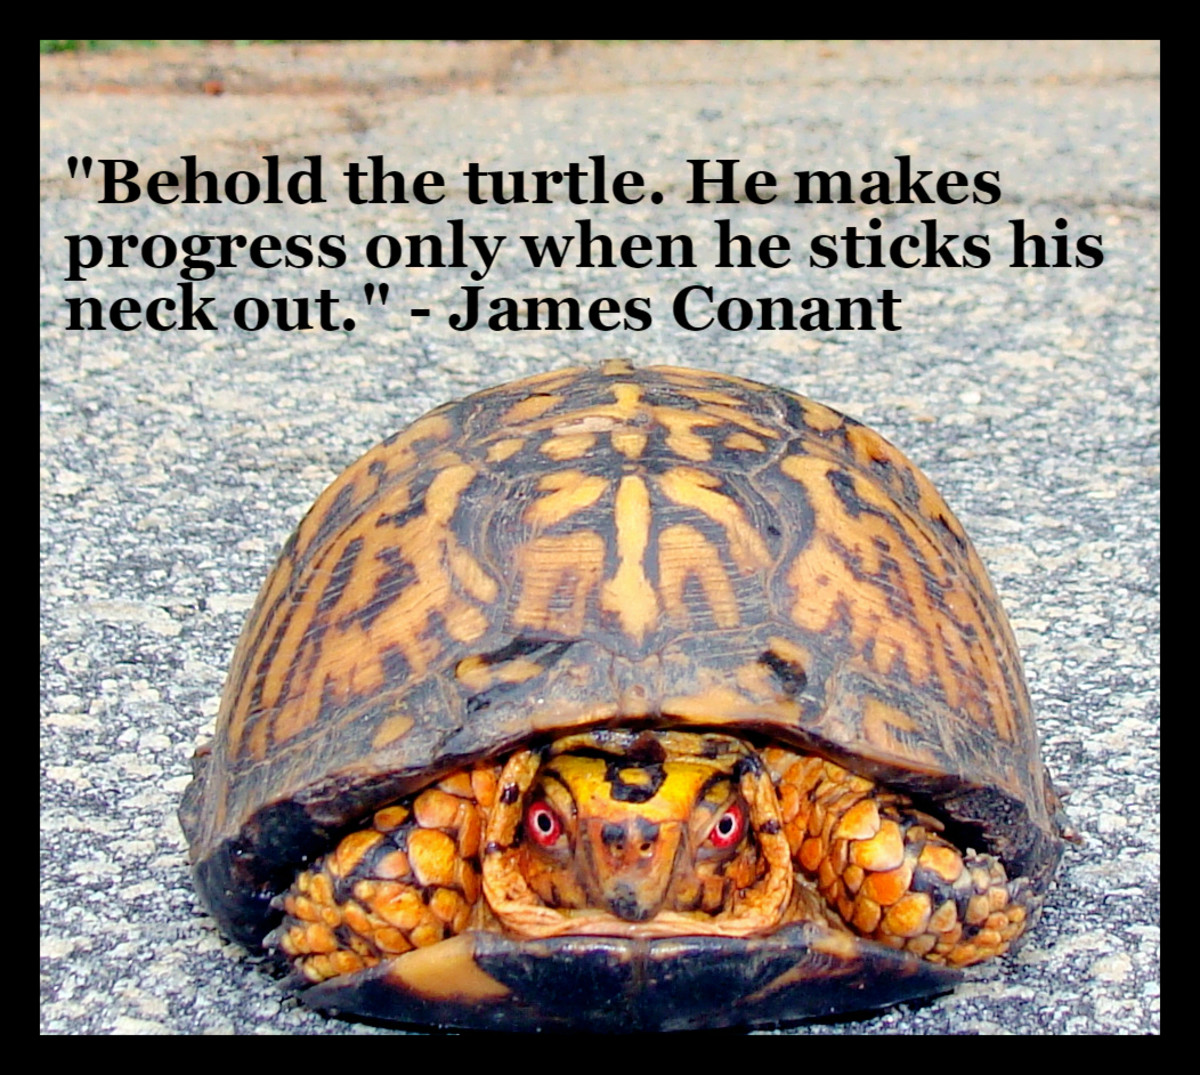 """Behold the turtle.  He makes progress only when he sticks his neck out."" - James Conant, former president of Harvard University"